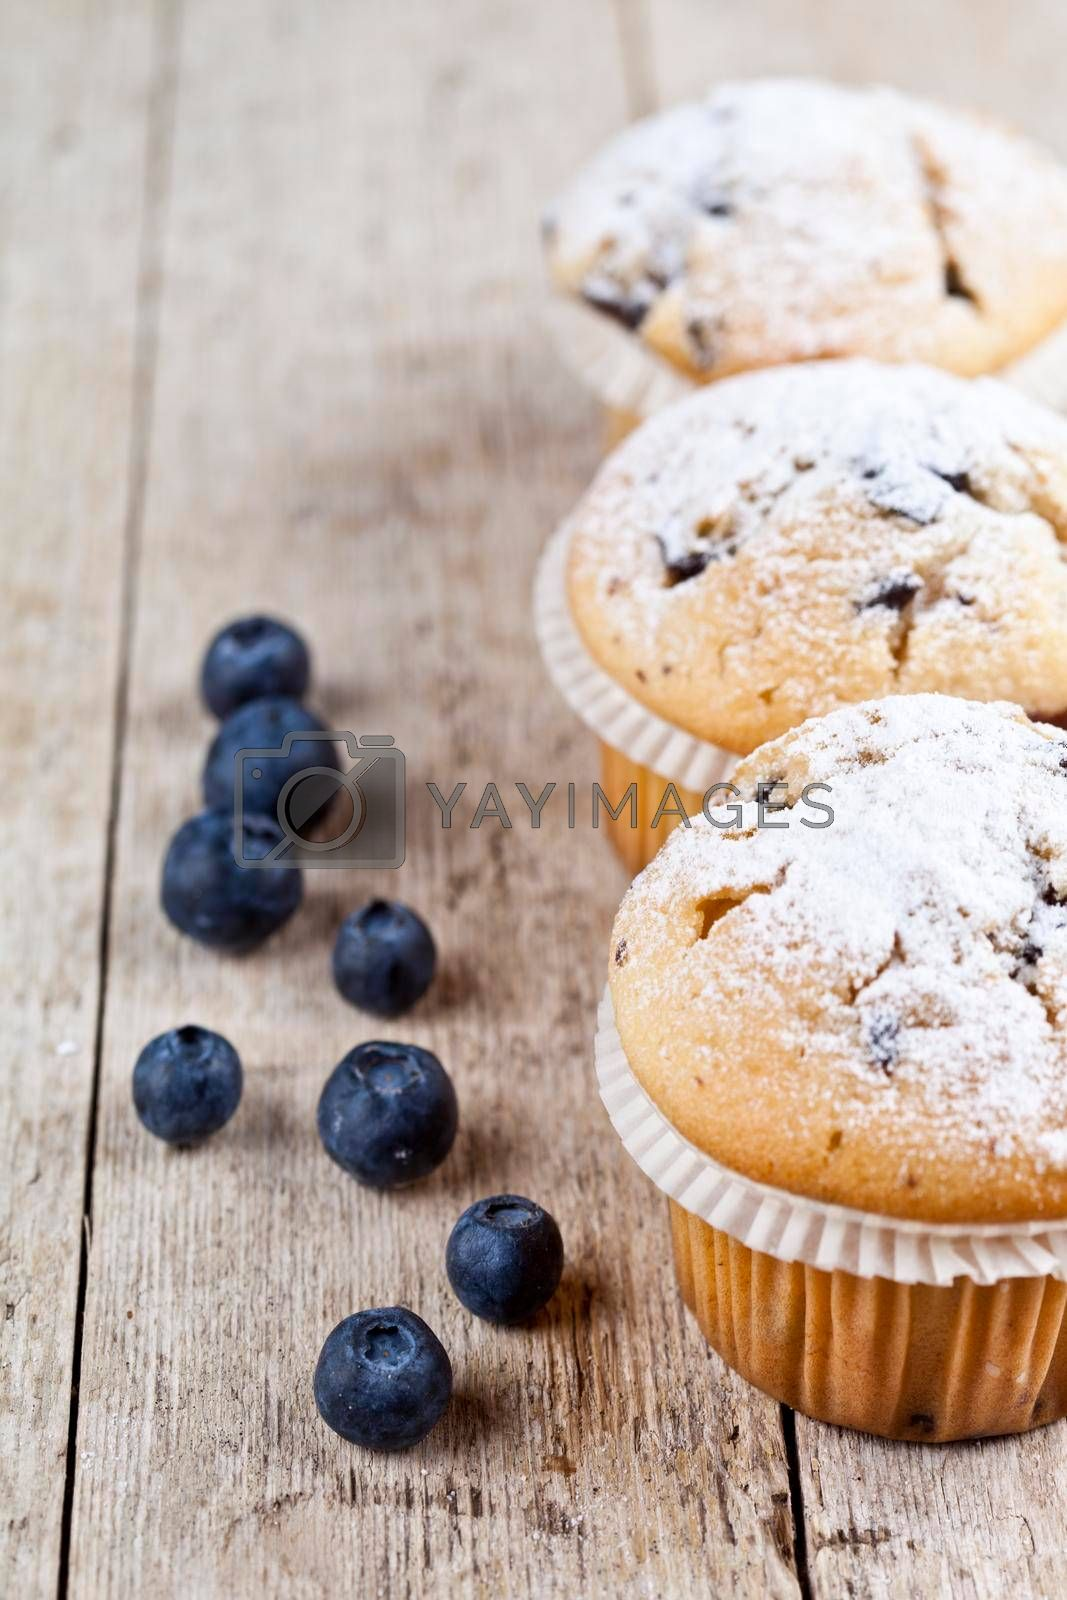 Homemade fresh muffins with blueberries on rustic wooden table background. With copy space.